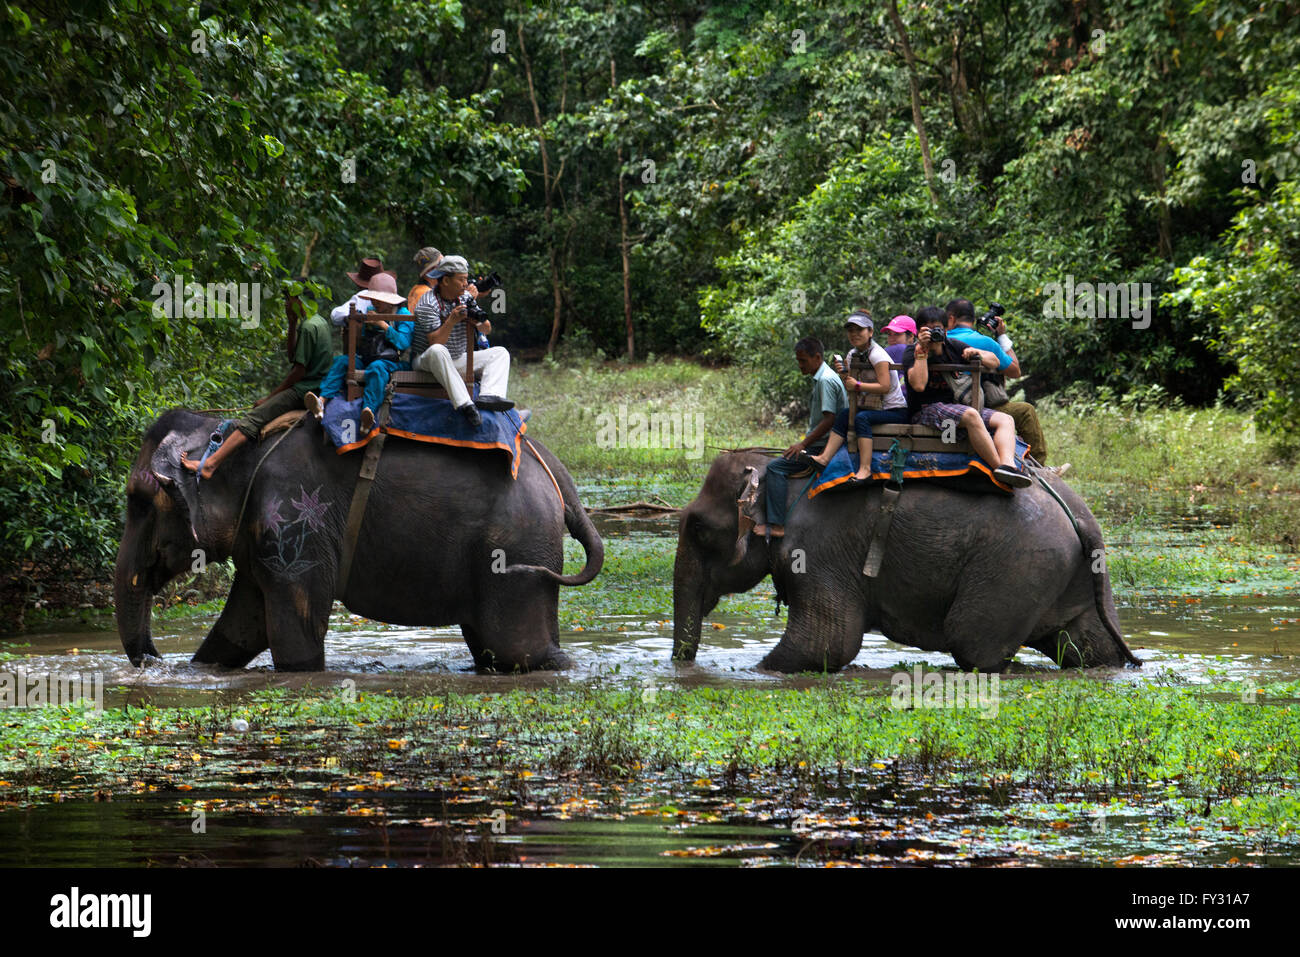 Indian or one-horned rhinoceros and tourists on elephant safari in Chitwan National Park, Nepal Stock Photo